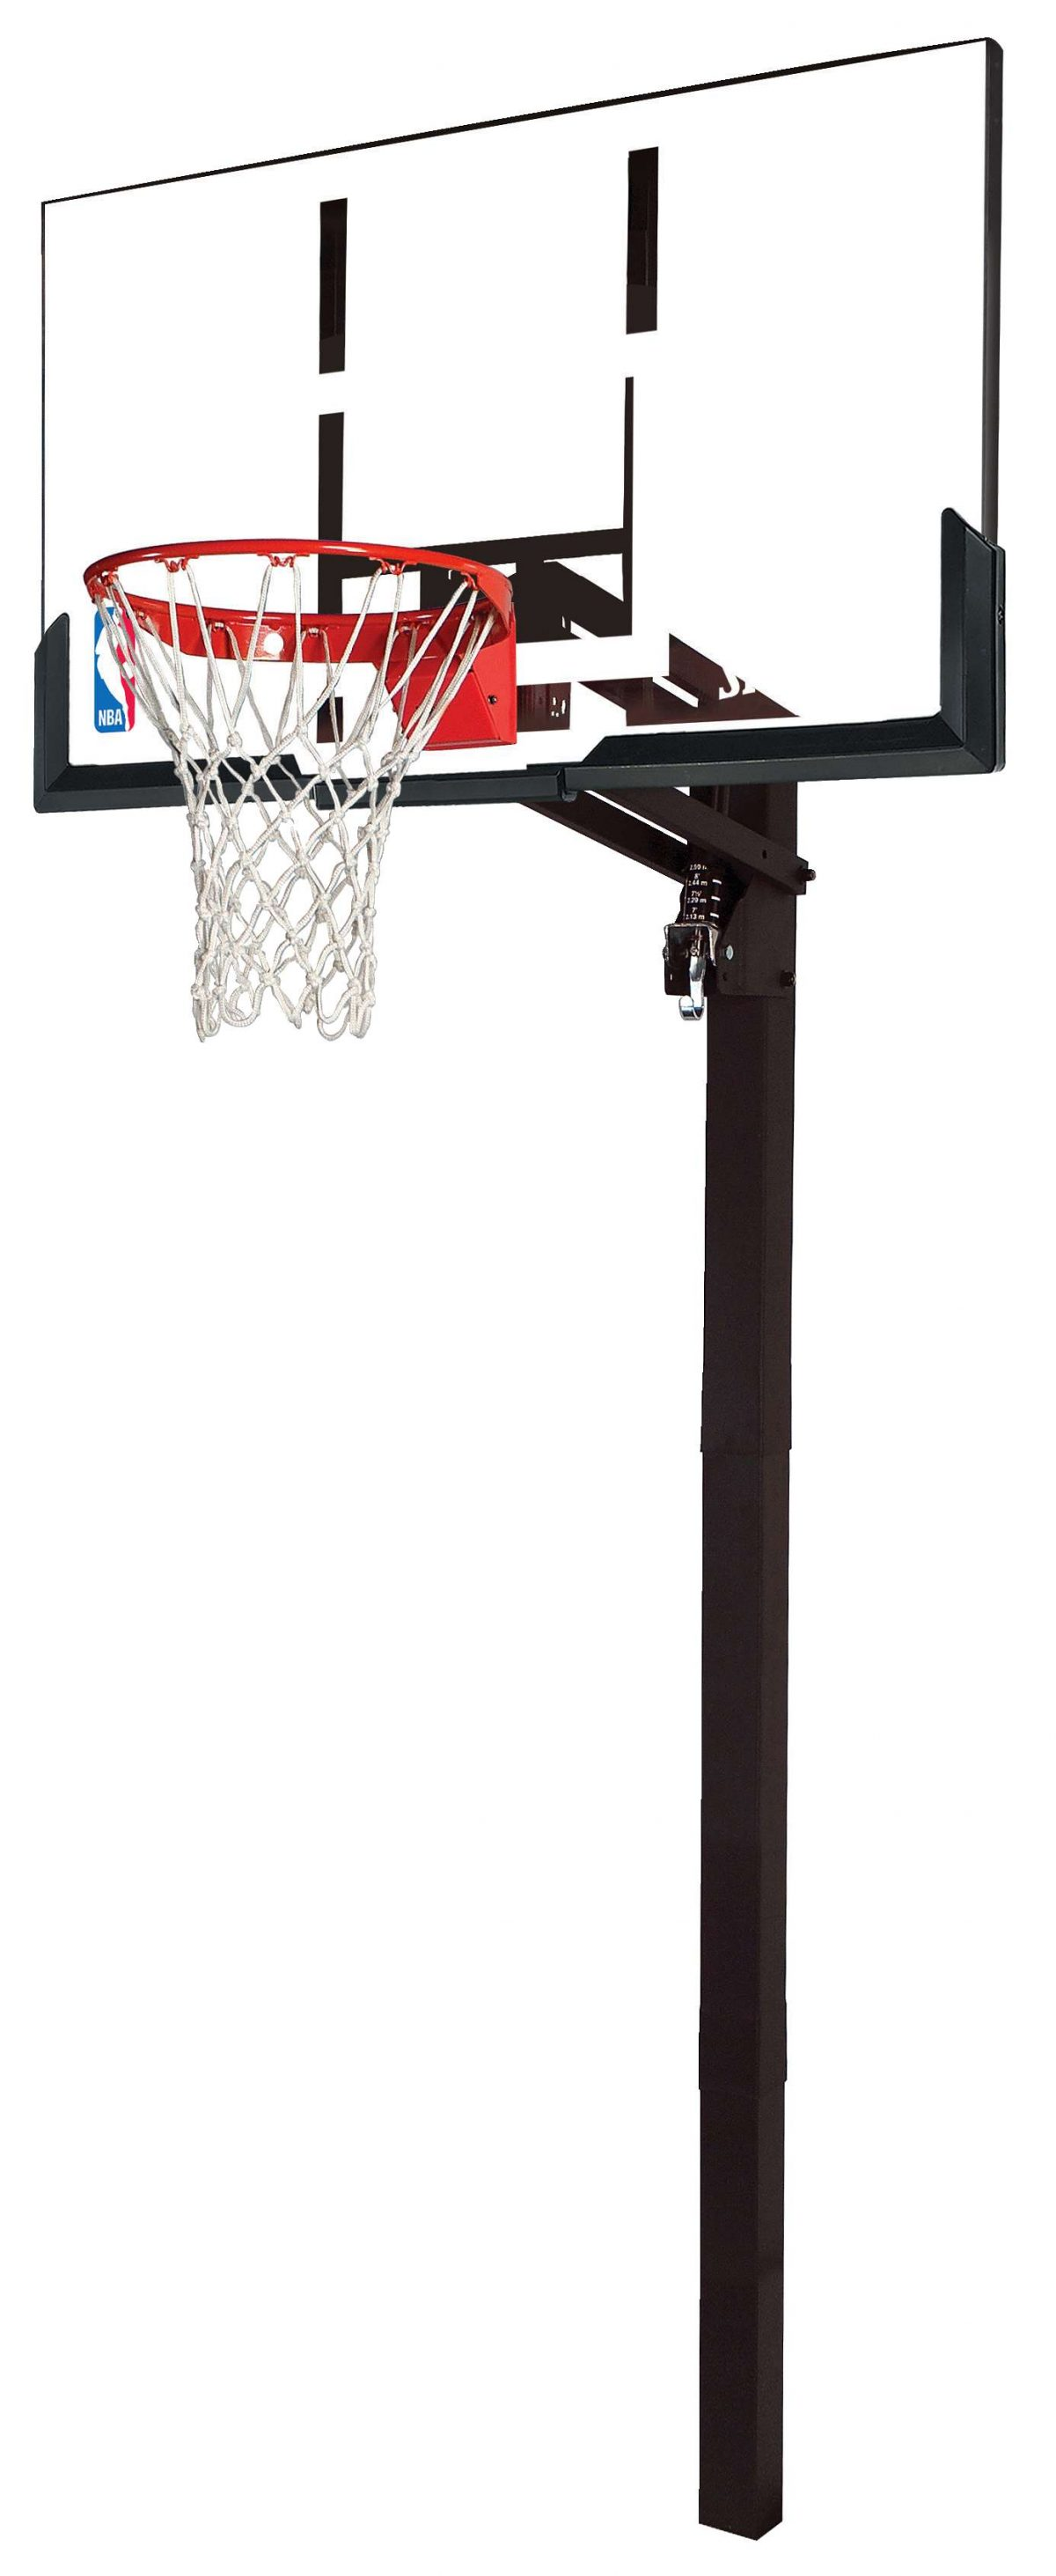 "Spalding Basketballanlage ""NBA Gold Exacta High Lift In-Ground"" - Teamsport - Spalding"